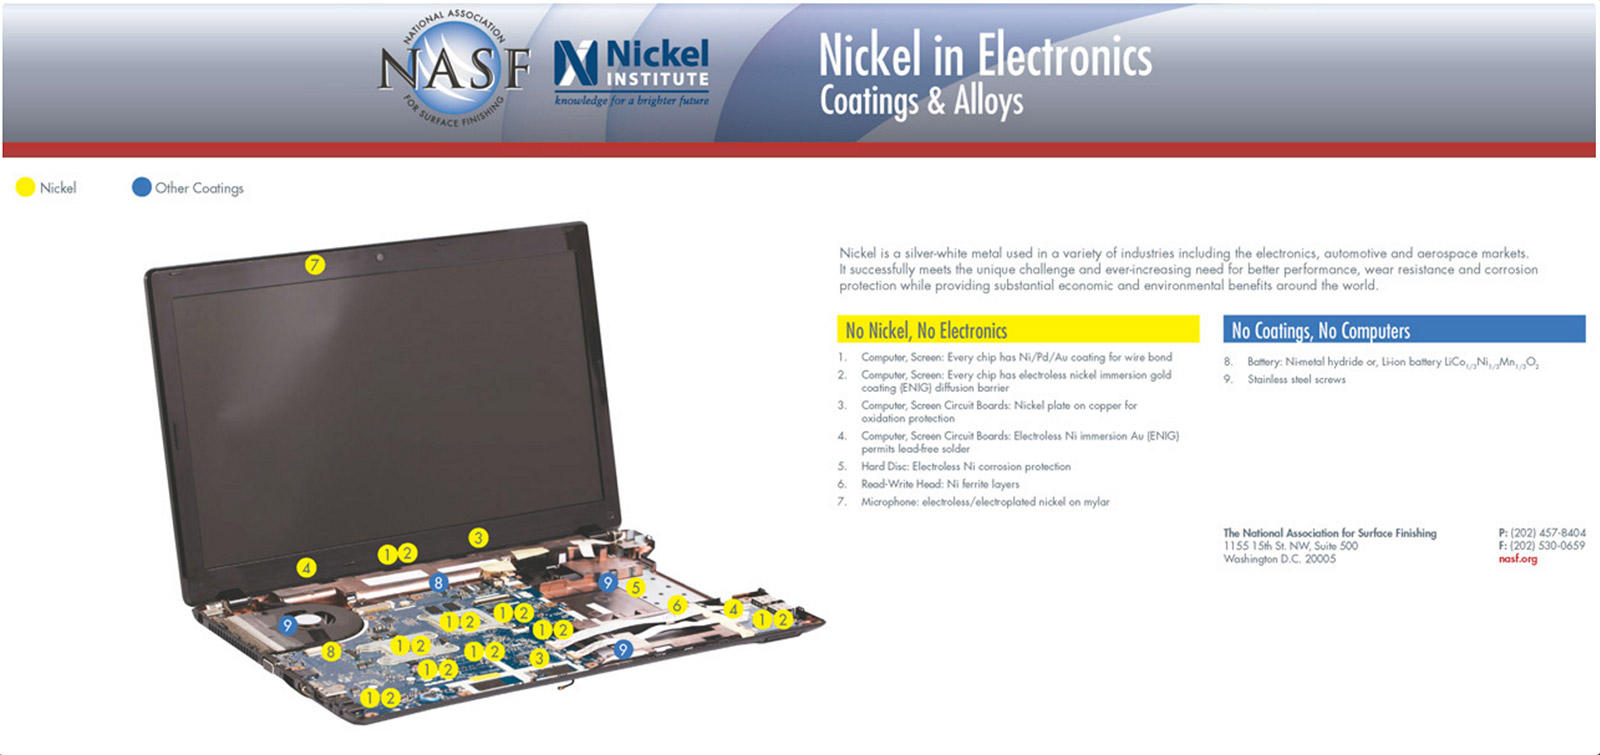 Nickel Cobalt Products Brazilian Plc Aeronautics Printed Circuit Board 8l Fr4 Immersion Gold Hard Aerospace Mobile Phones Electronics